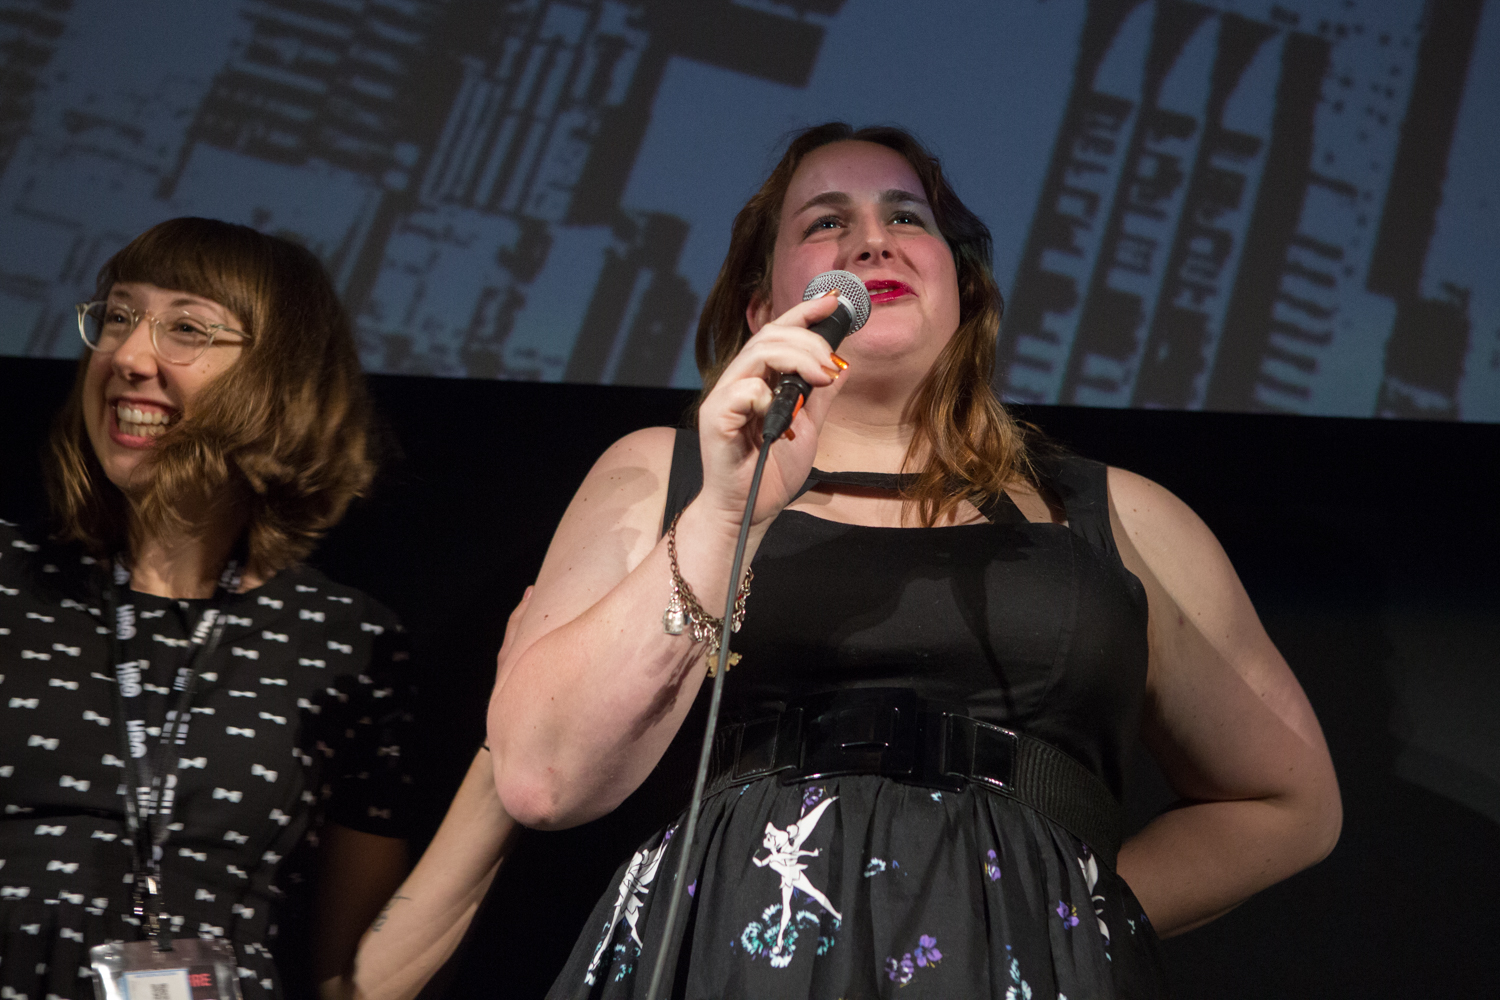 Julie Sokolow (Director) and Brooke Guinan (Subject) speak at DOC NYC for the world premiere of Woman on Fire.